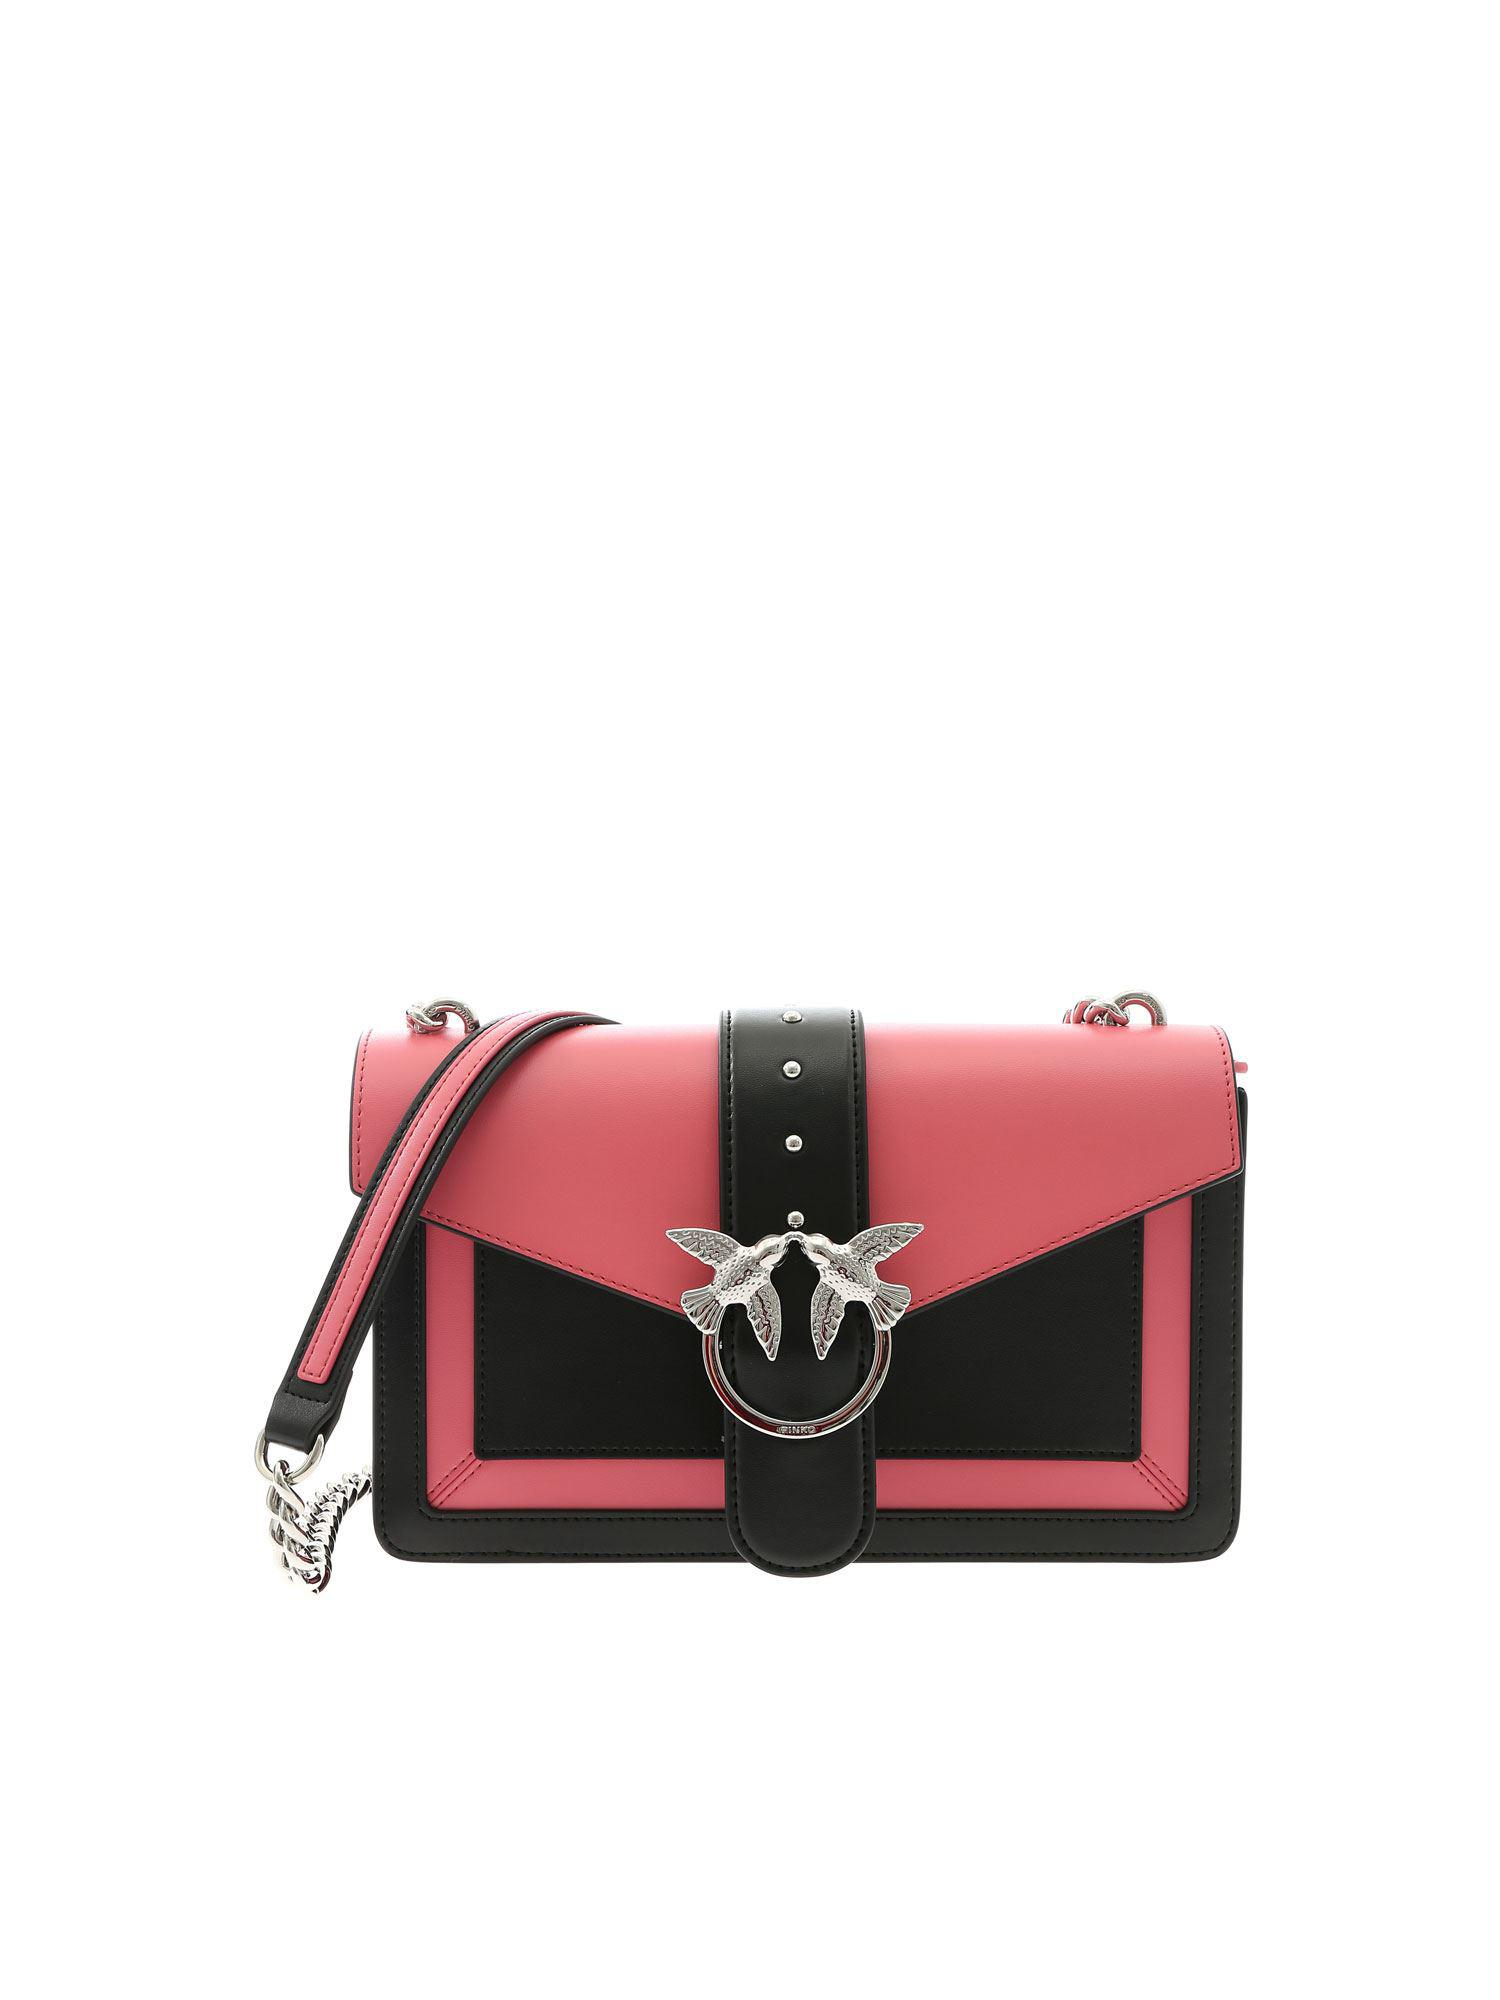 71a0158567 Pinko Love Evolution Bag In Black And Pink Leather in Black - Lyst